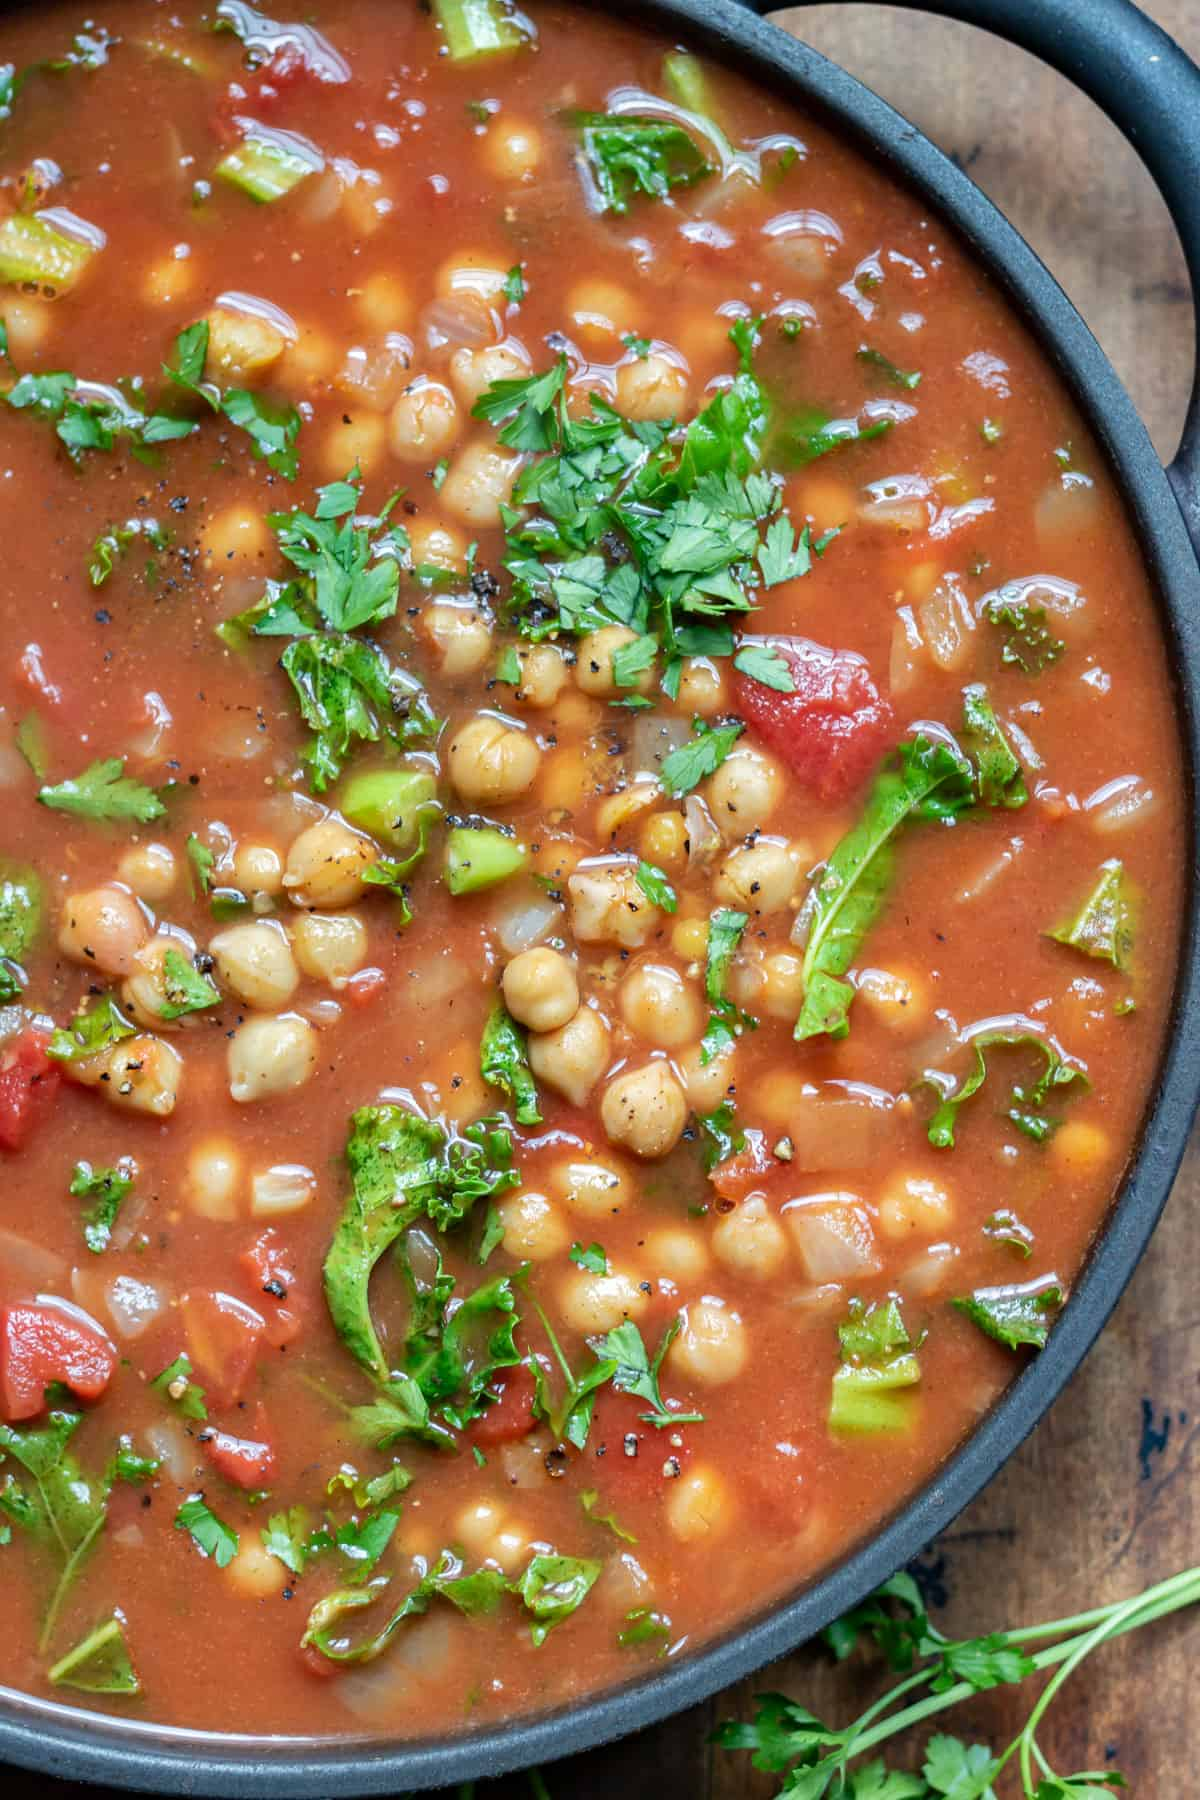 Close up of chickpea soup in a dish.